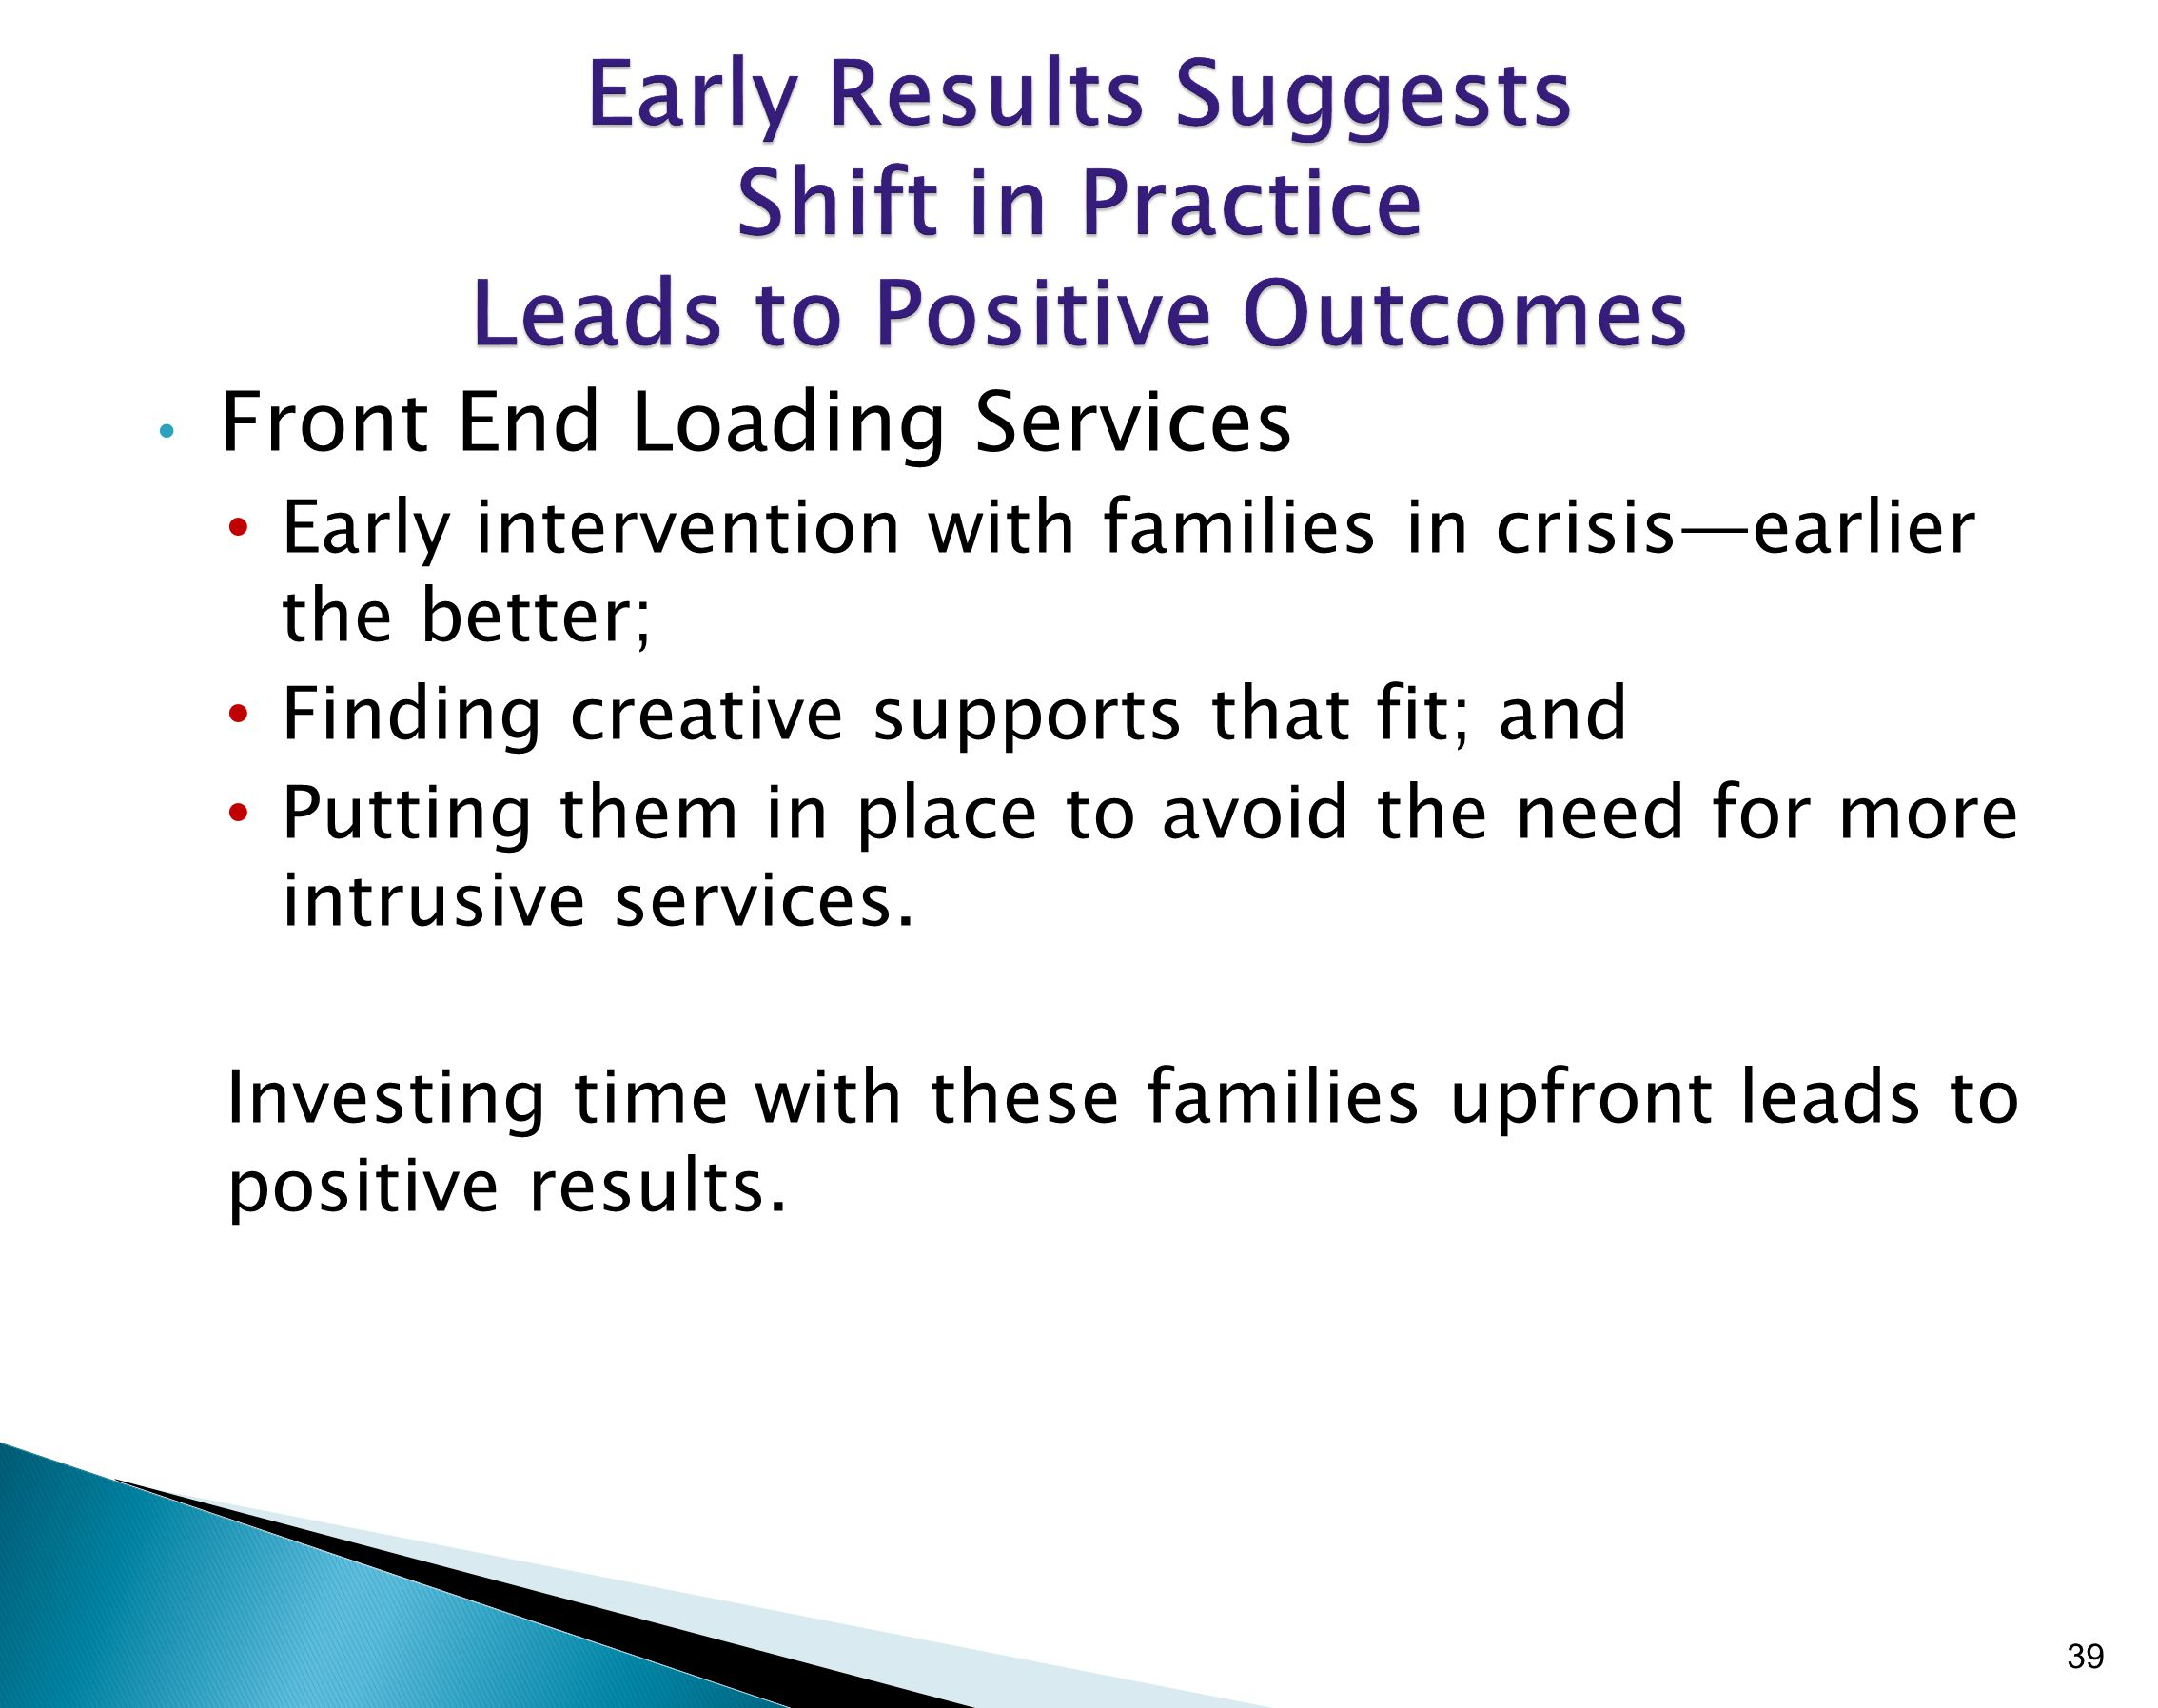 Front End Loading Services Early intervention with families in crisis—earlier the better; Finding creative supports that fit; and Putting them in place to avoid the need for more intrusive services.